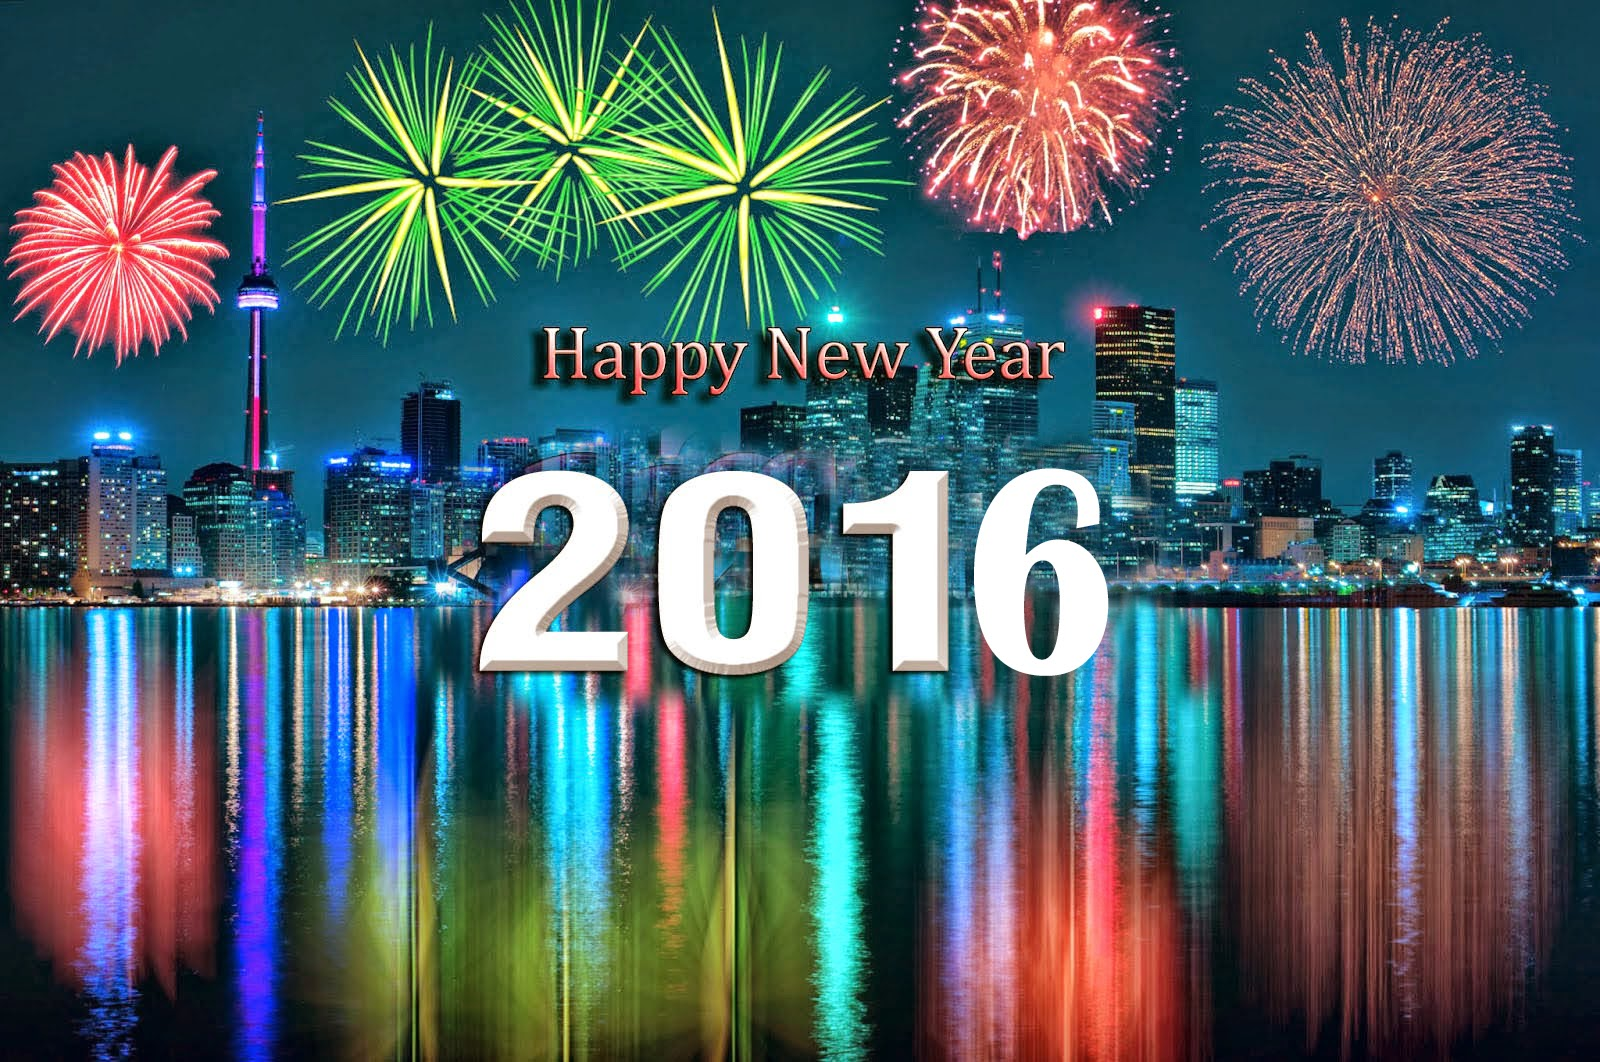 New year 2021 Wishes, images, Wallpapers HD Image in Hindi English Pictures